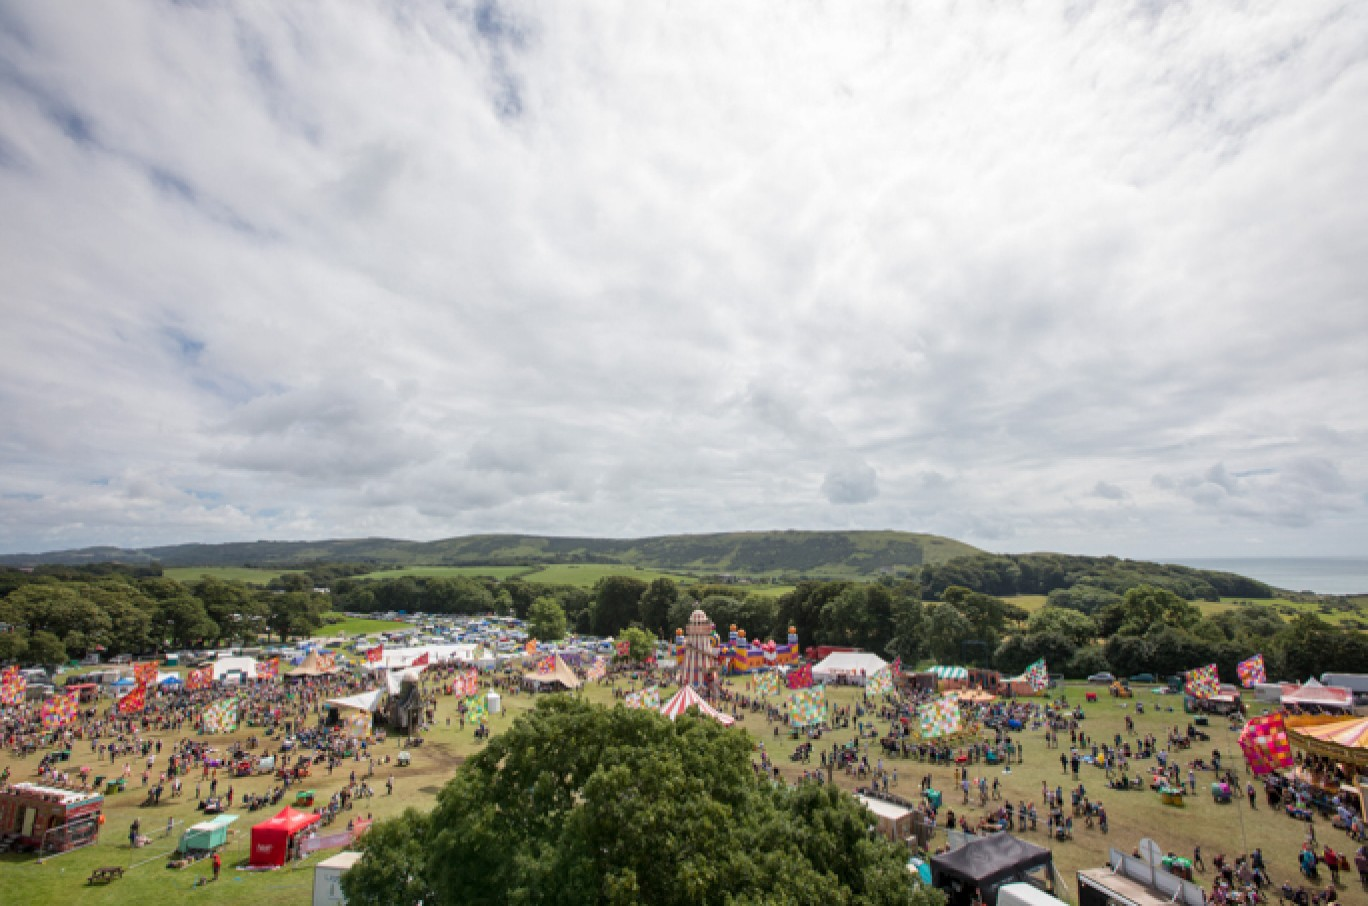 6_46-camp-bestival-2017-kids-field-vf-vic_65731501585014